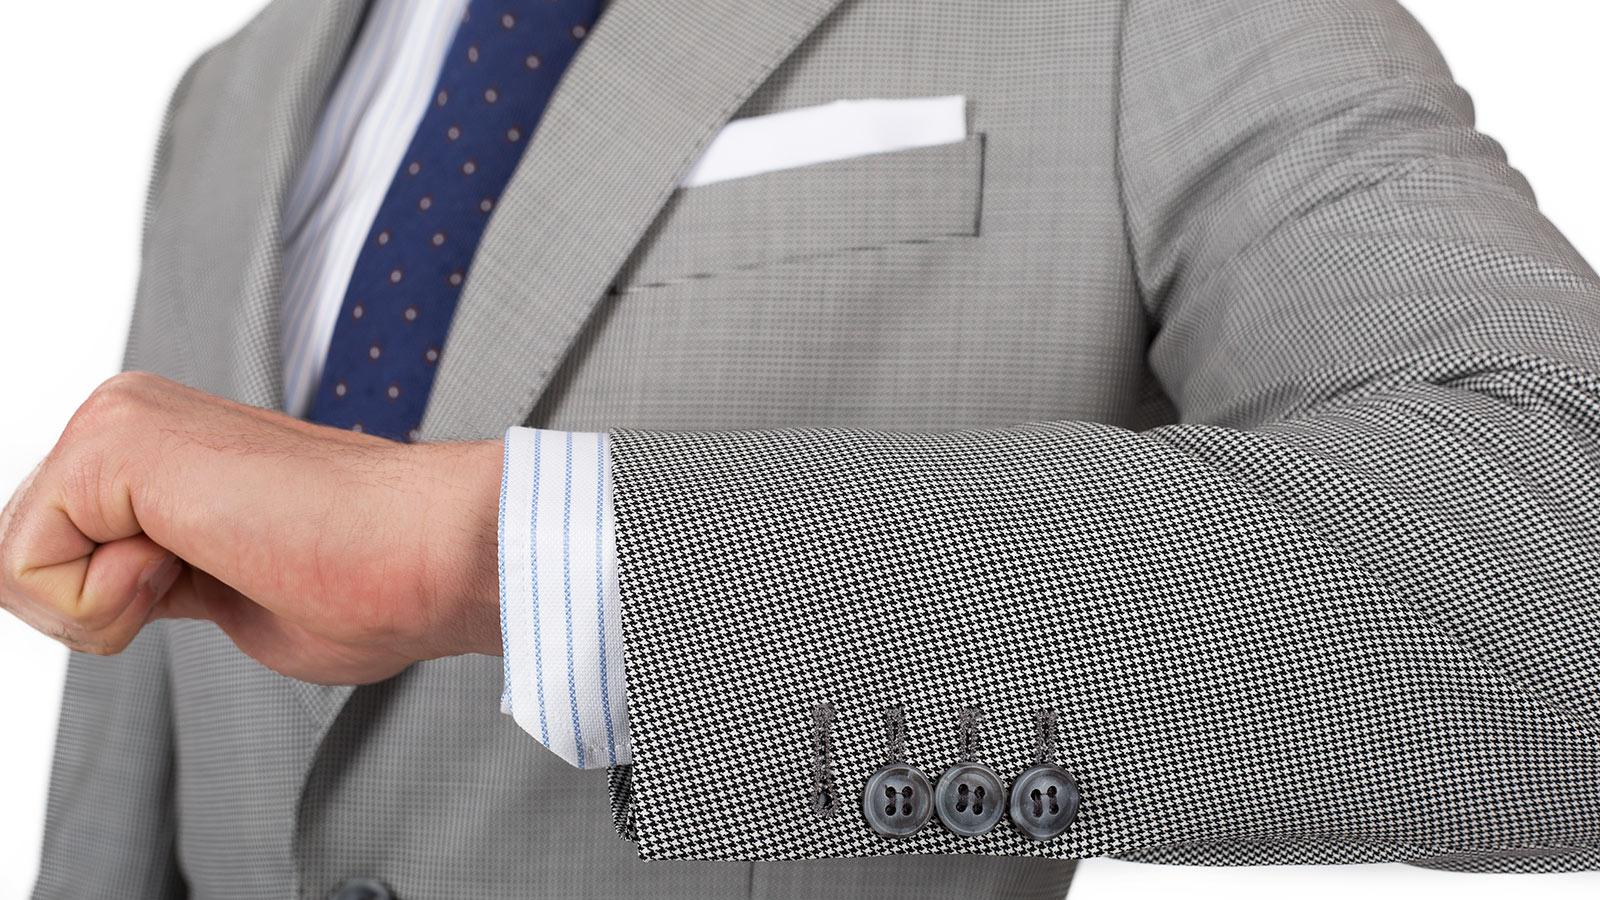 Vendetta Premium Grey Houndstooth Suit - slider image 1